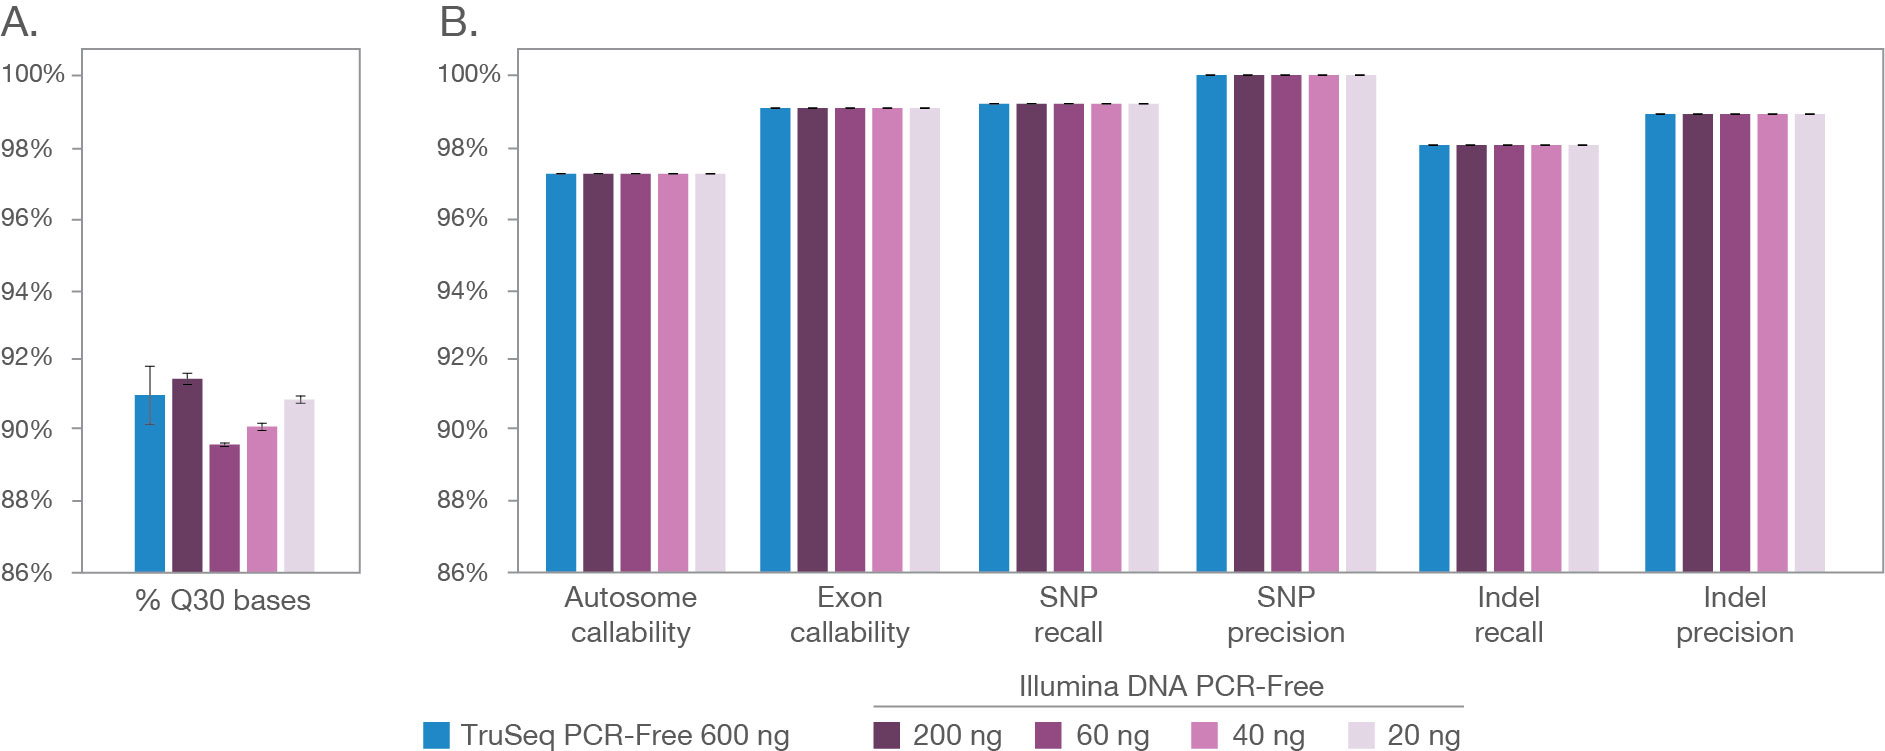 Illumina DNA PCR-Free performance across a range of DNA inputs